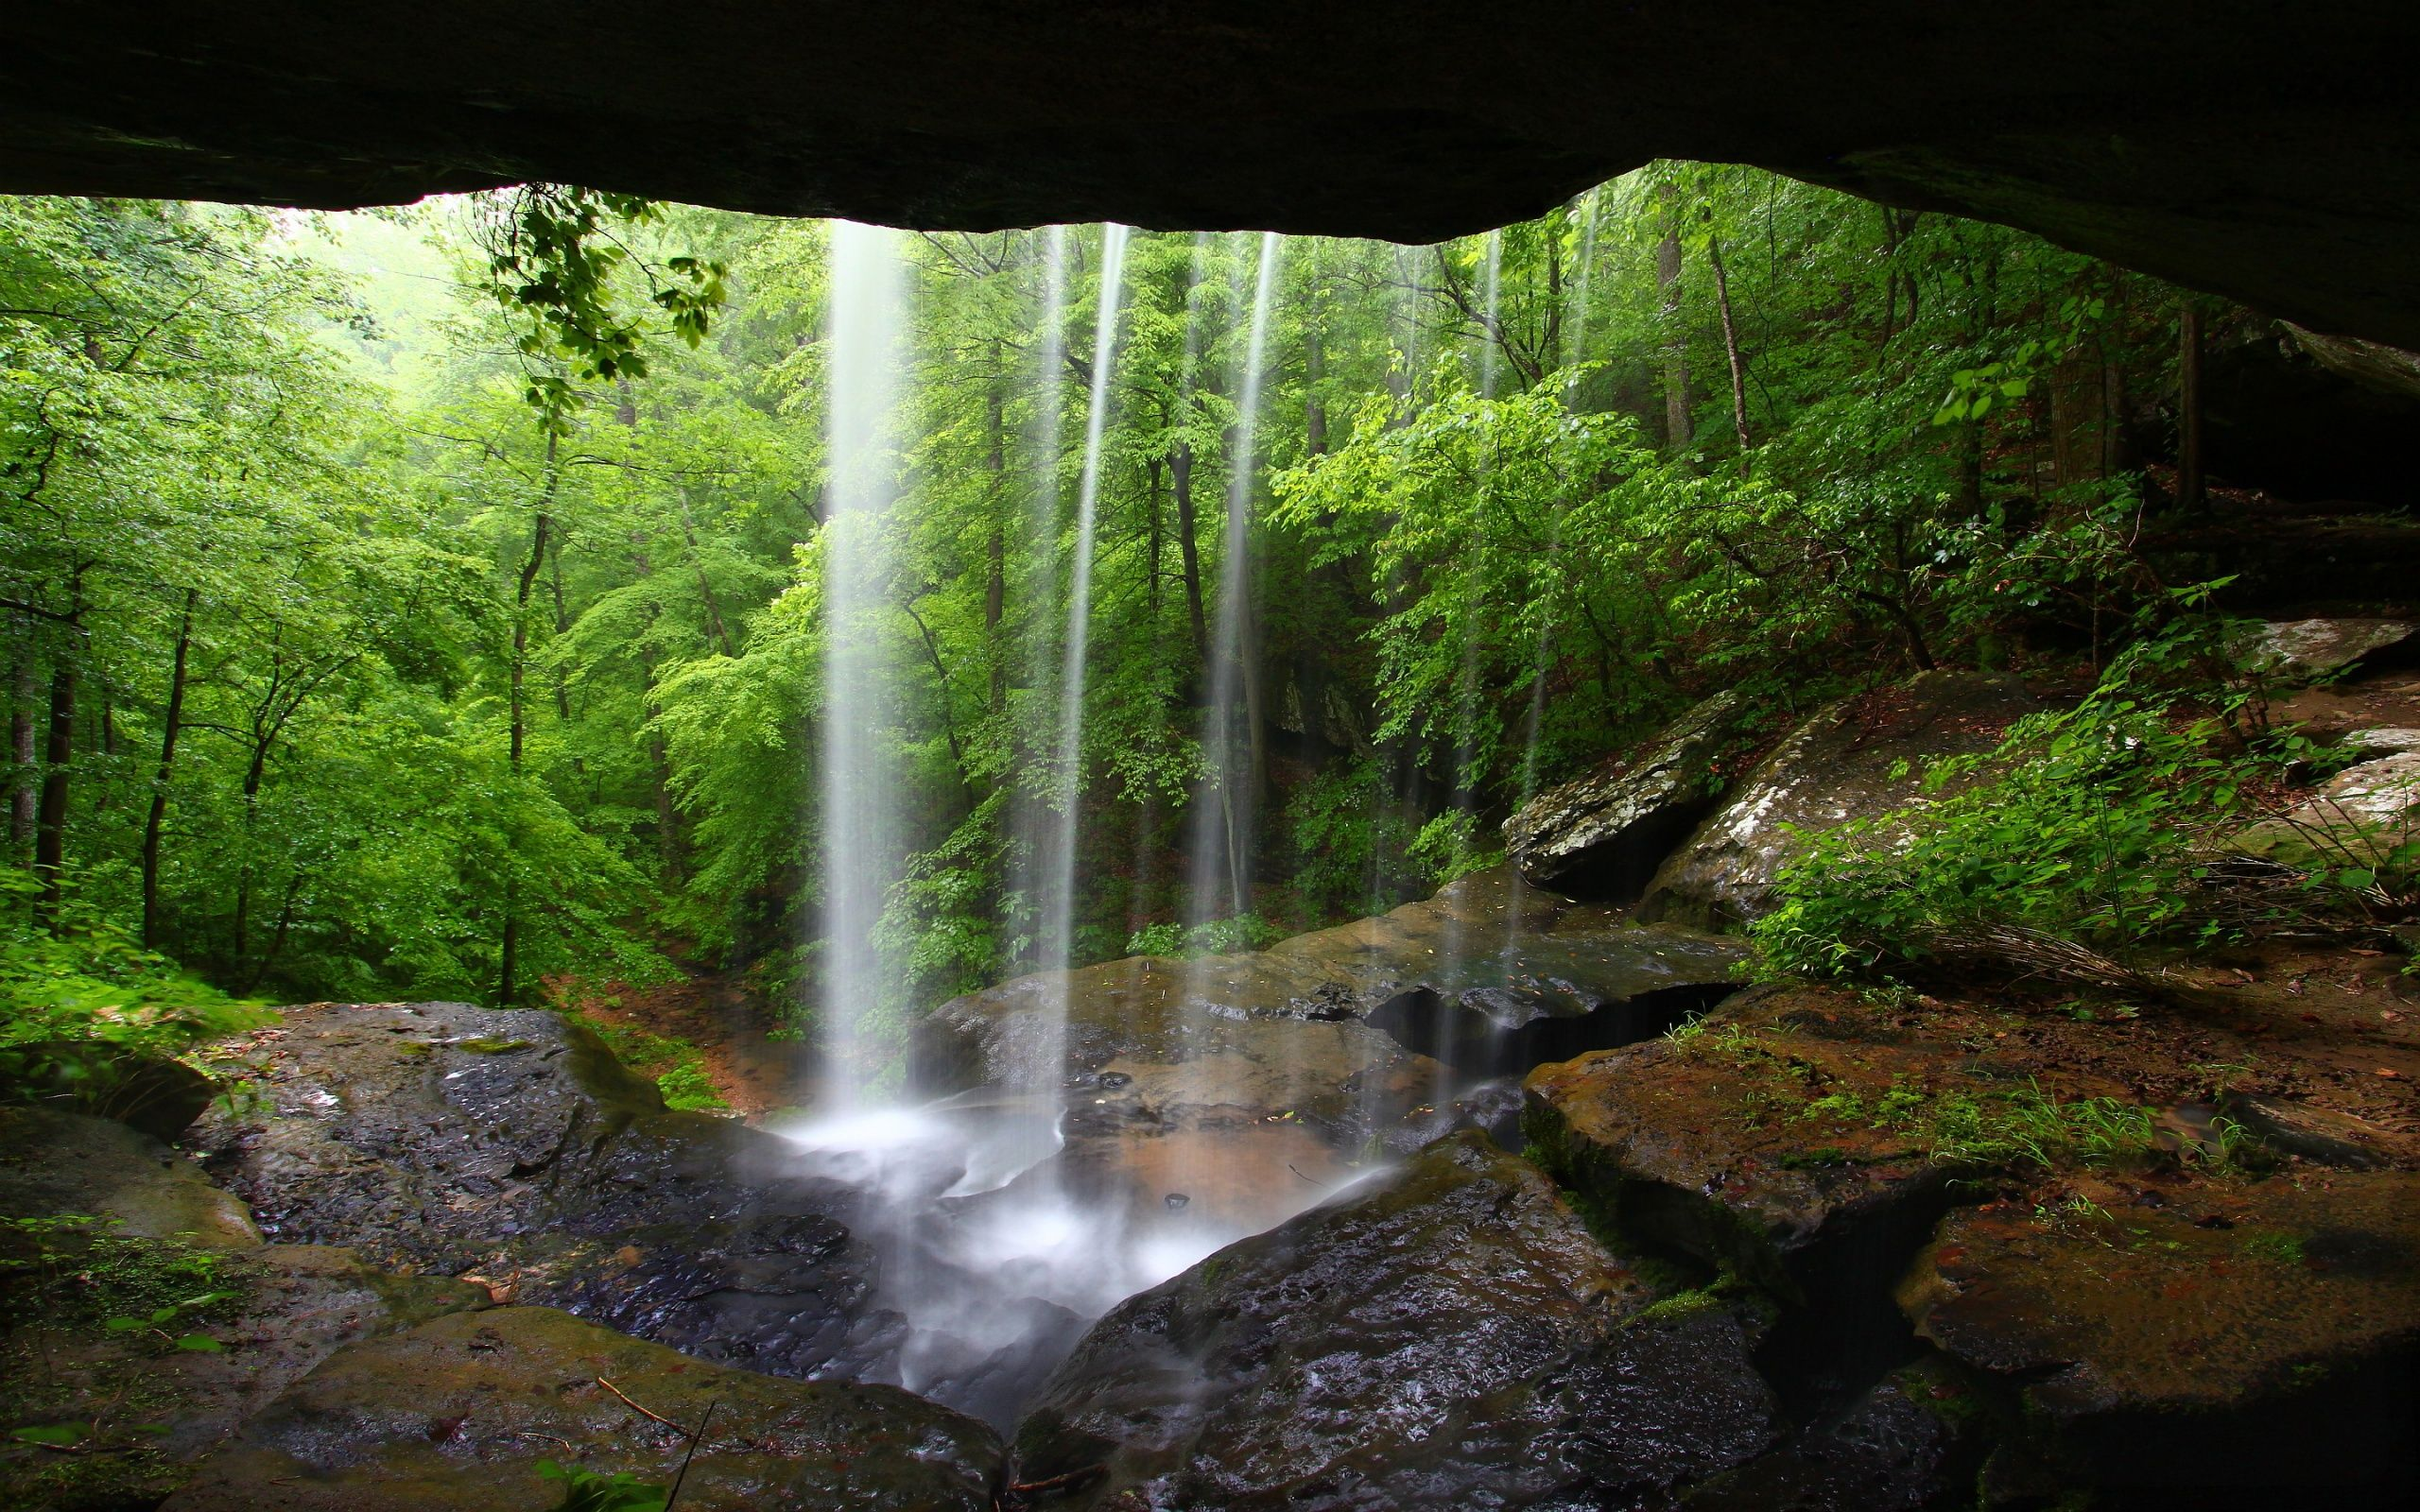 Amazing small #Waterfall inside the #cave.